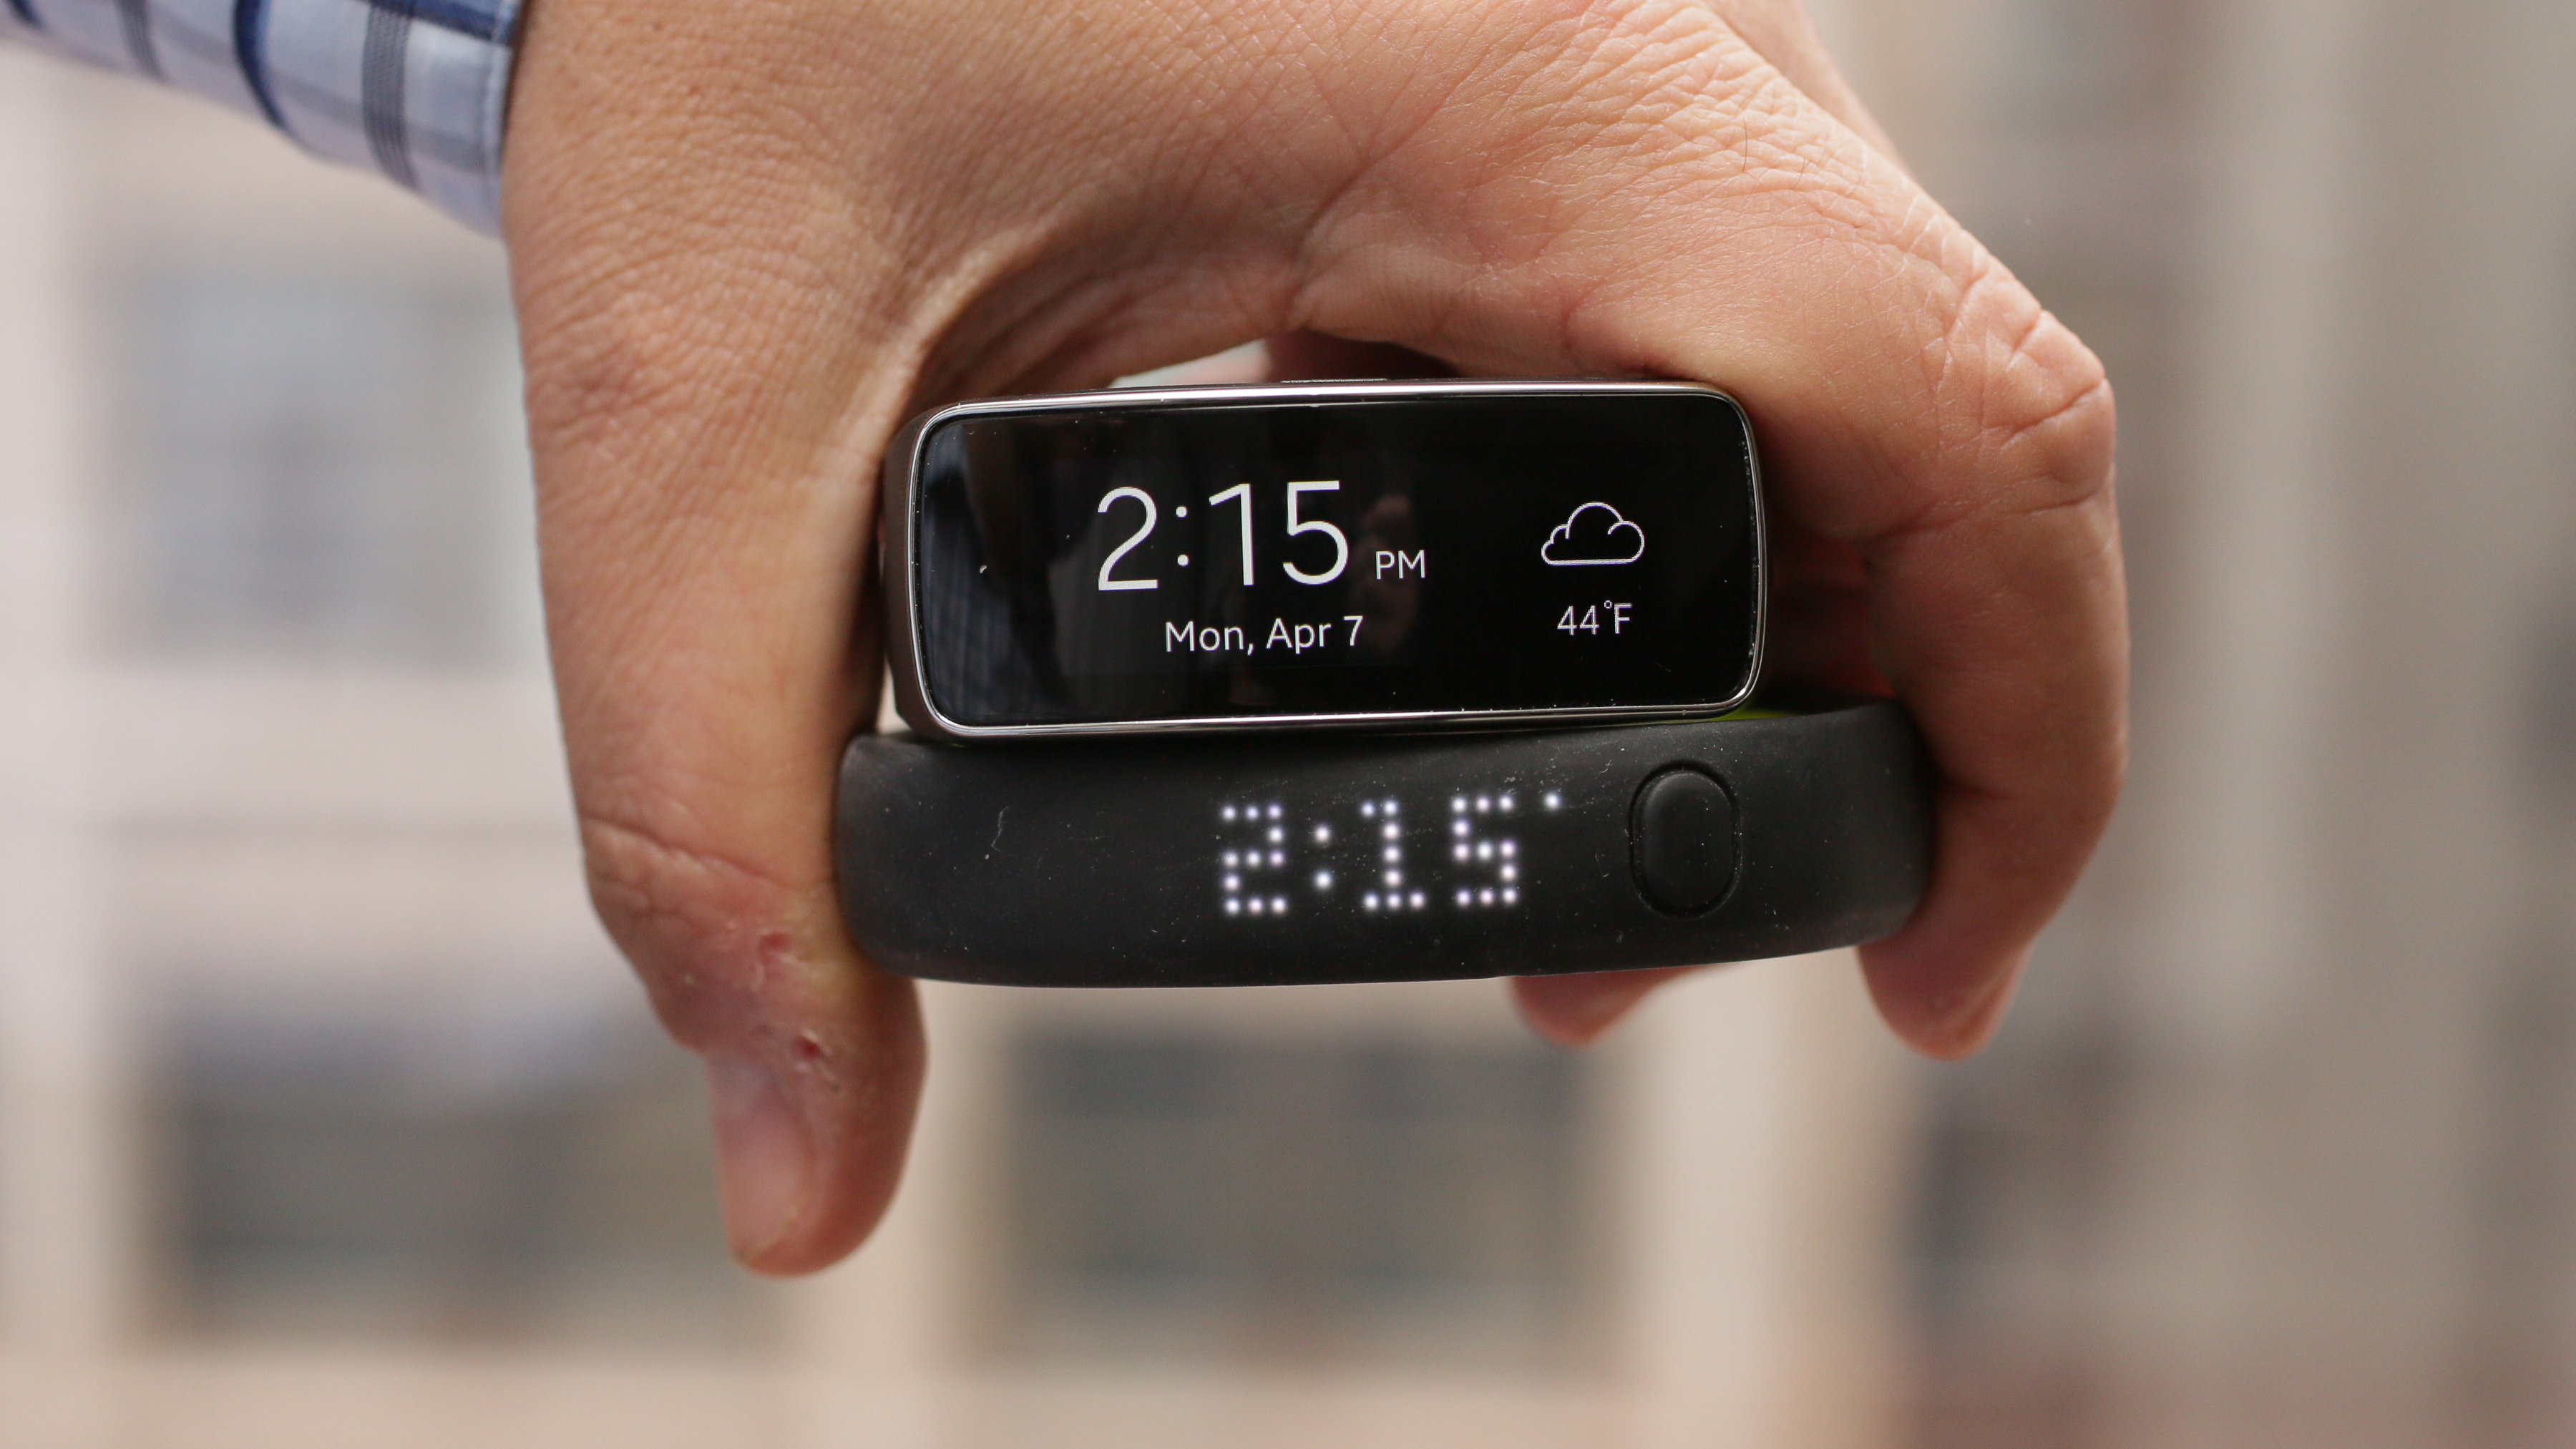 samsung-galaxy-gear-fit-product-photos-add02.jpg